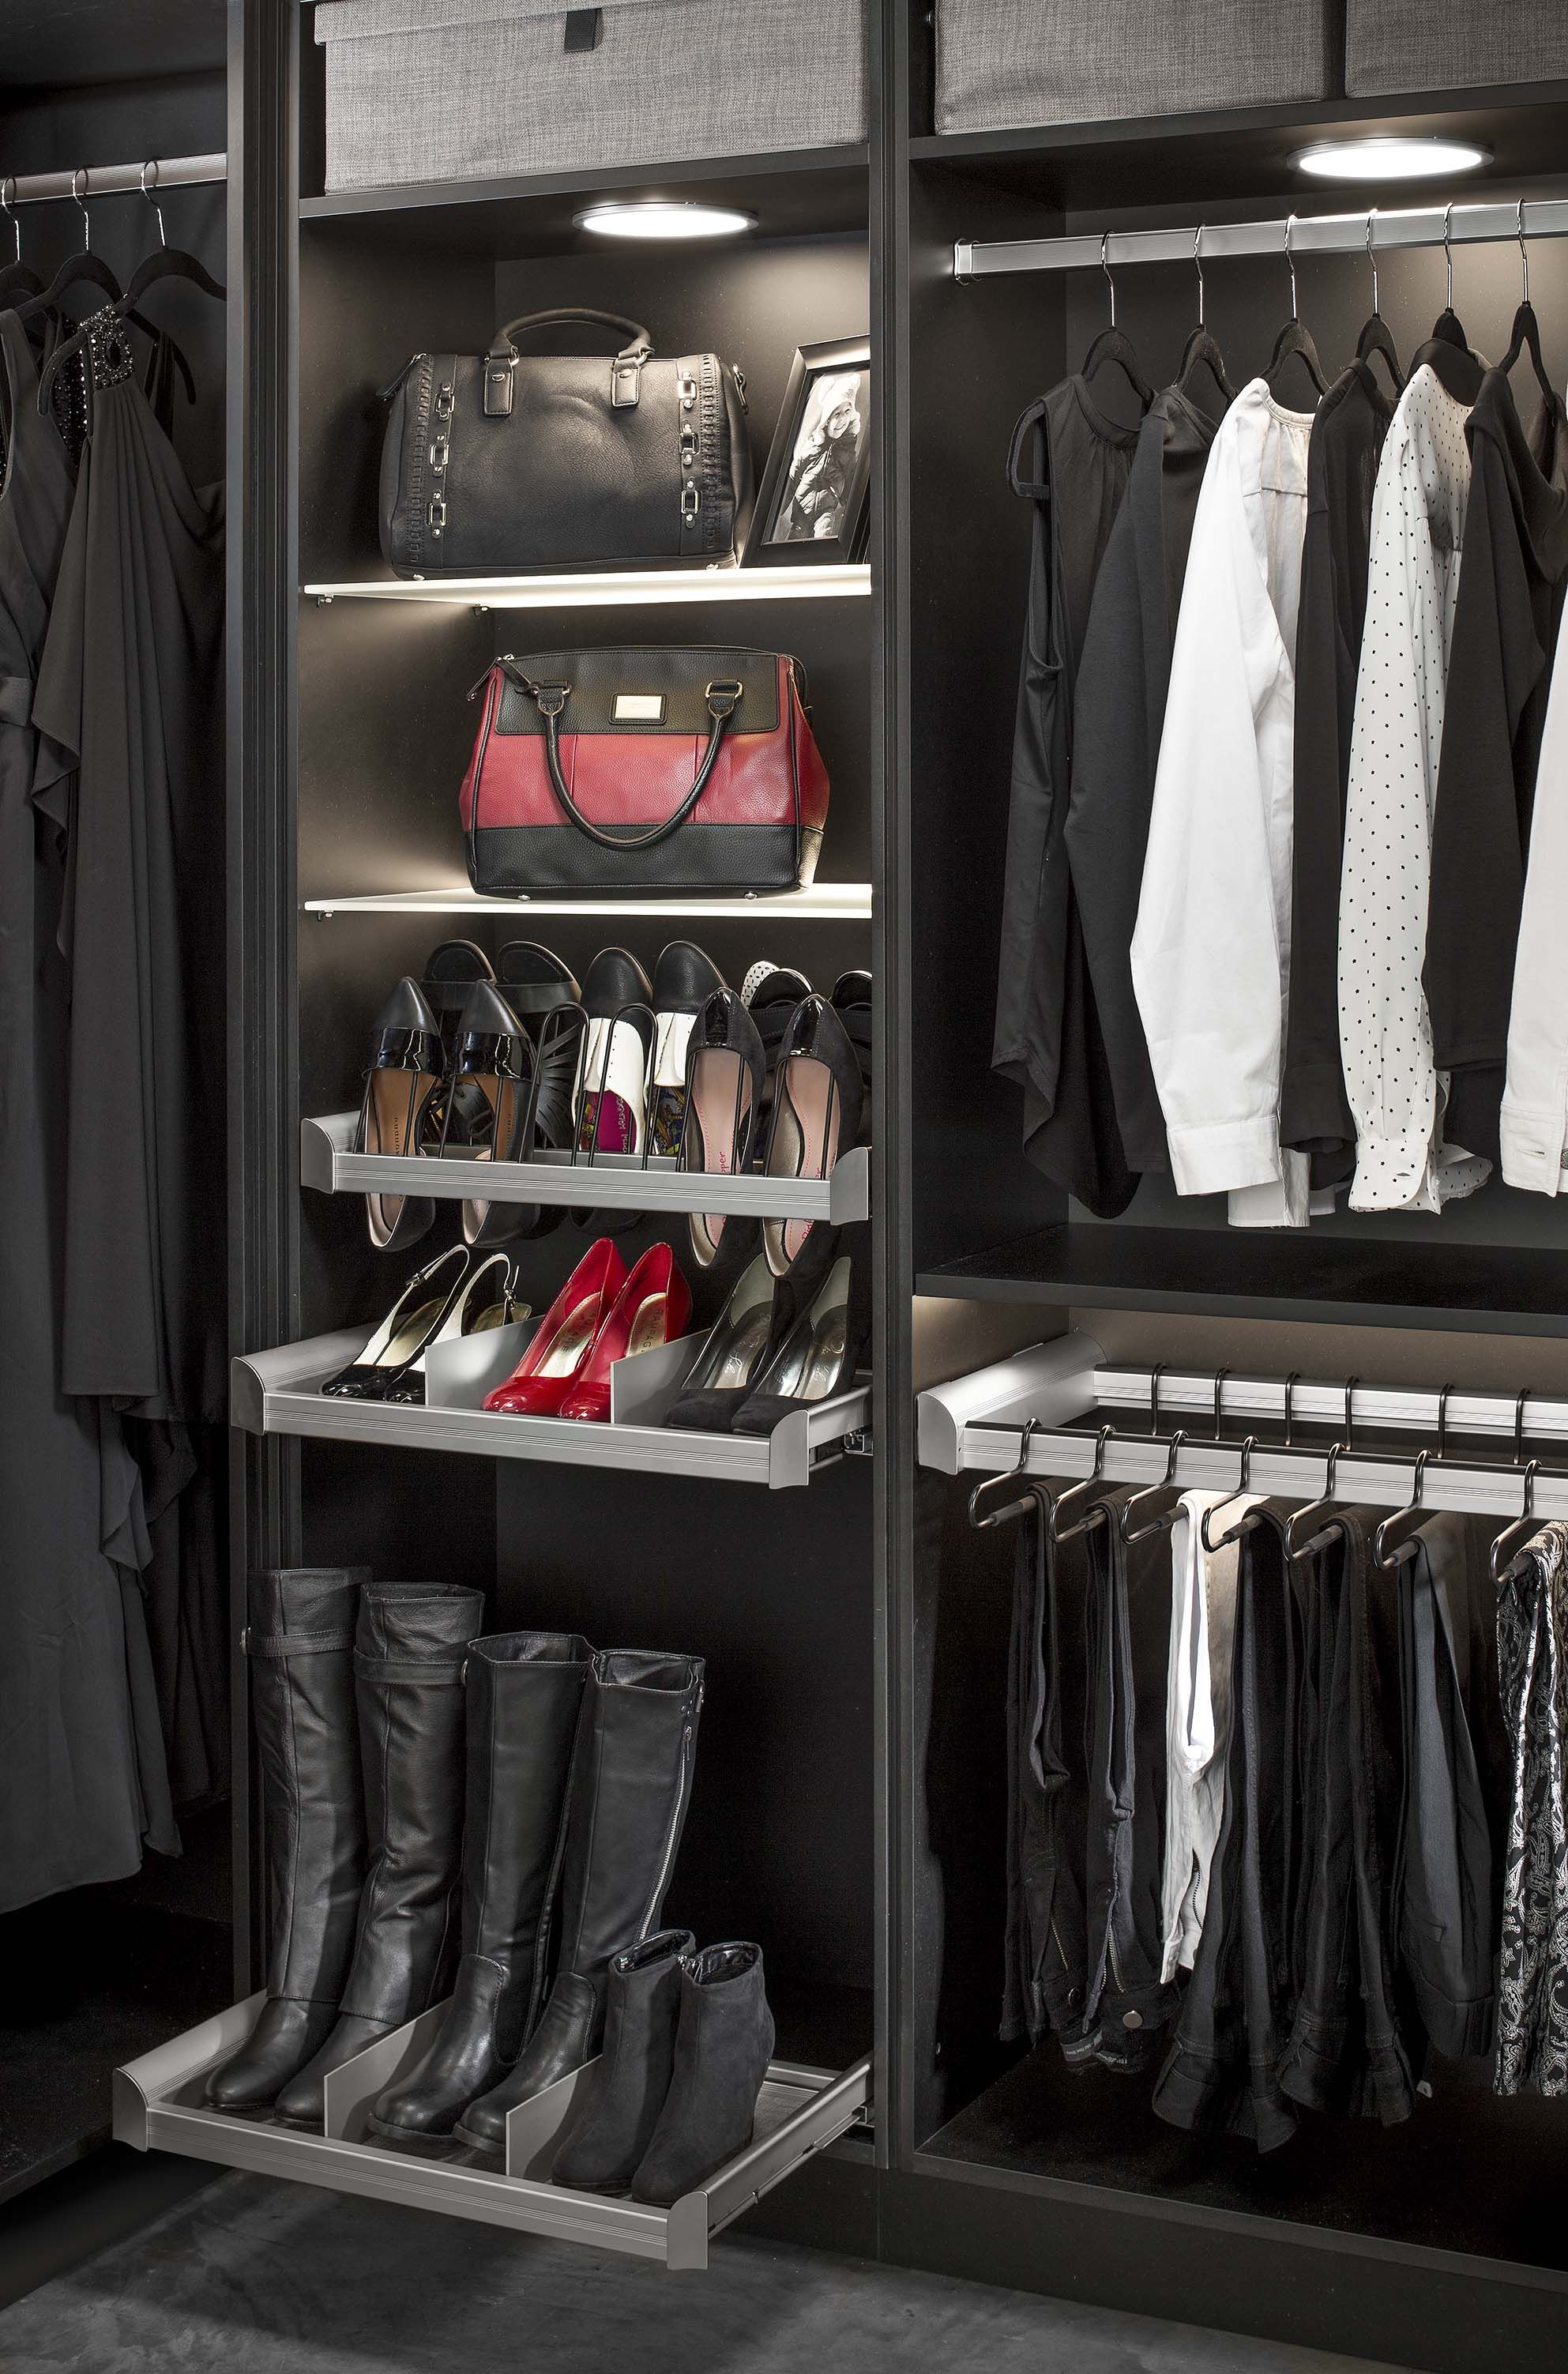 learn 5 nonobvious custom closet design facts to reduce your stress and to start loving your closet shoe organizer organizers